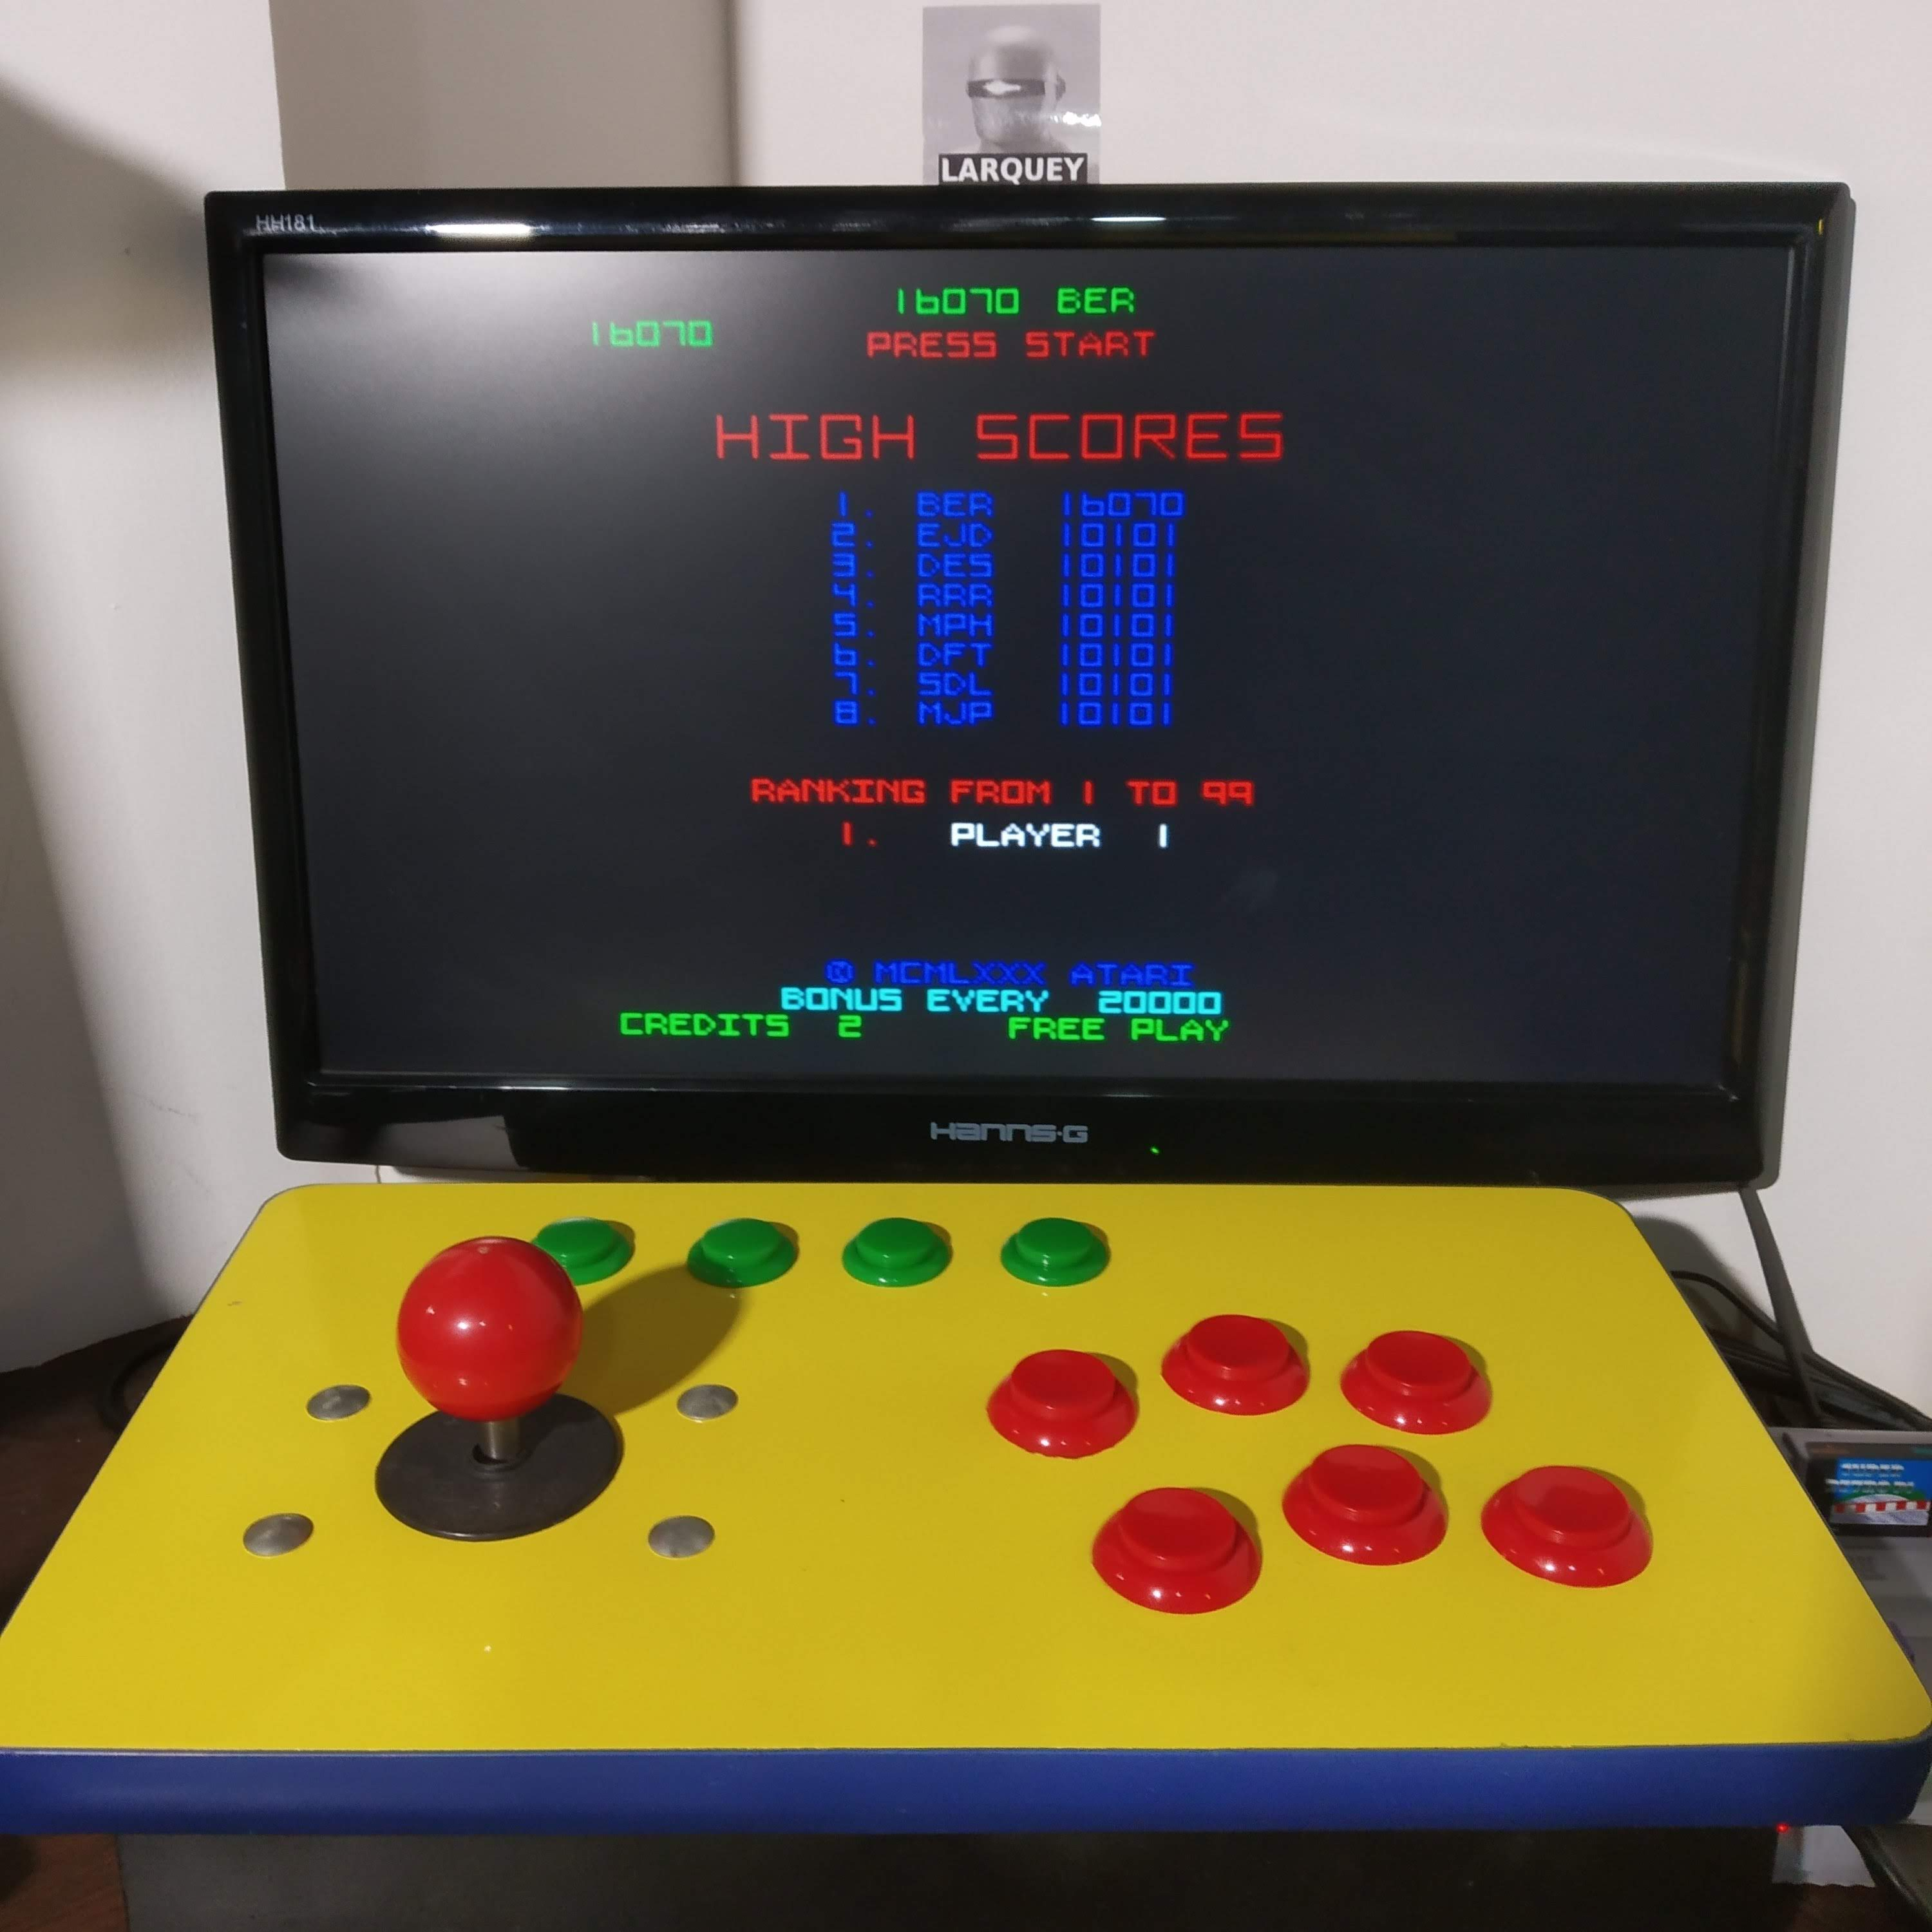 Larquey: Arcade`s Greatest Hits: The Atari Collection 1: Tempest (SNES/Super Famicom Emulated) 16,070 points on 2020-08-15 13:14:54